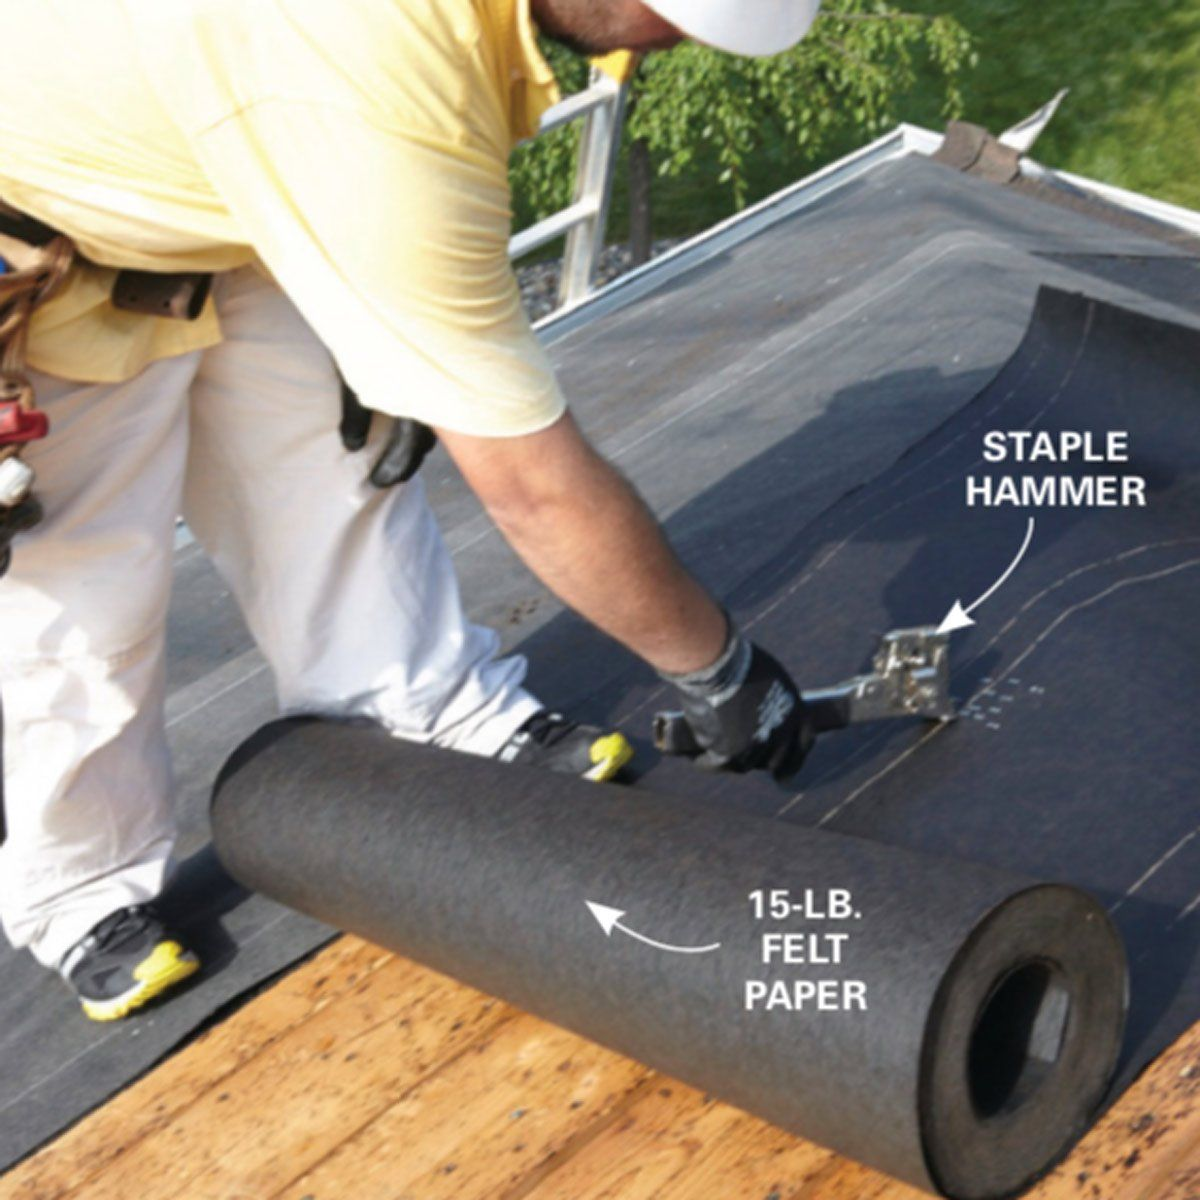 How To Roof A House In 2020 Diy Storage Shed Plans Roof Diy Roofing